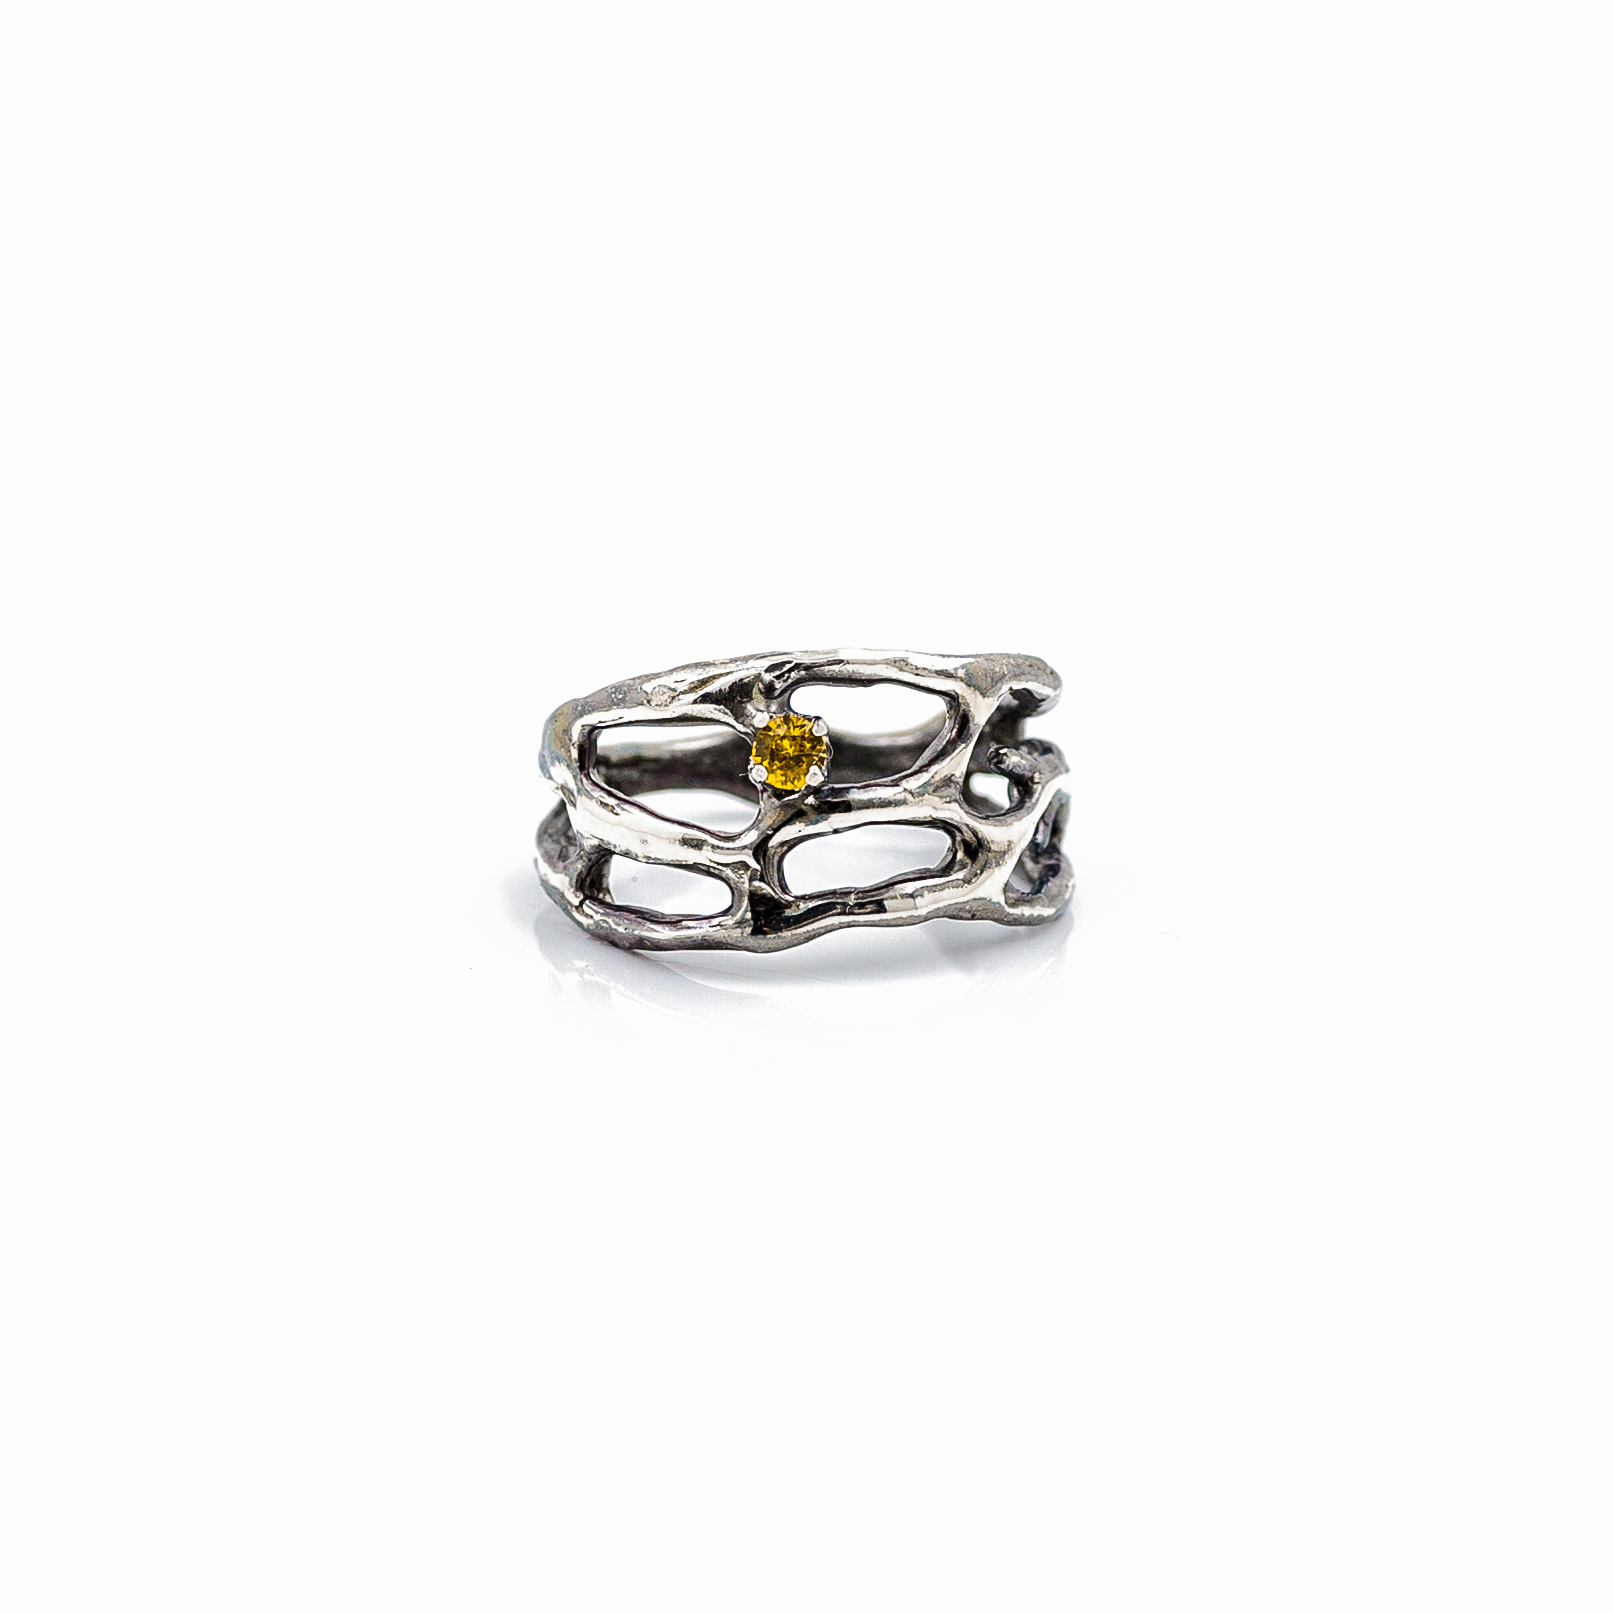 Silver branches of a Cajal ring surround a stunning yellow Australian sapphire.